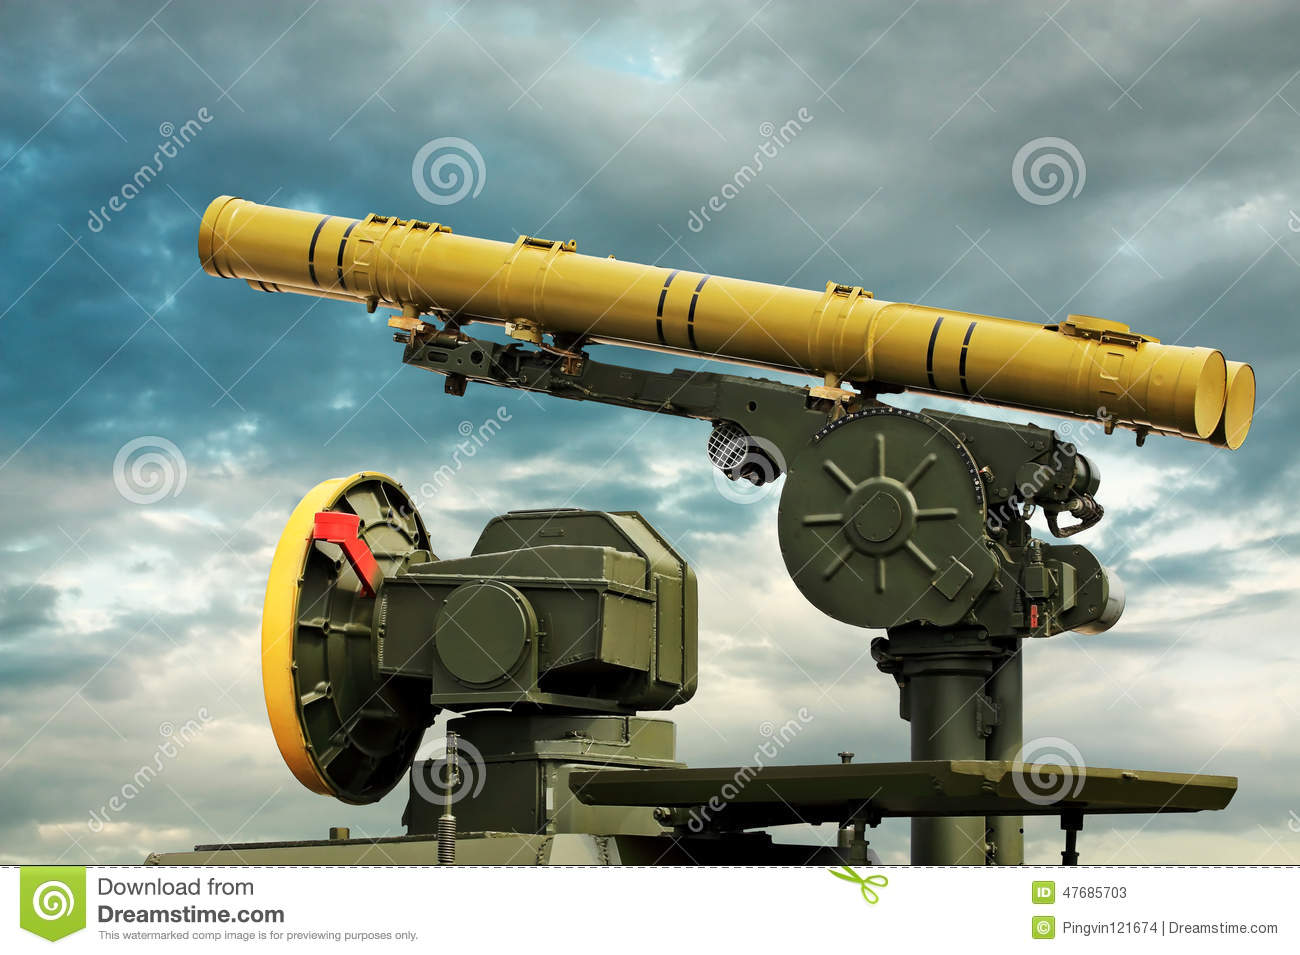 Anti tank missile clipart #16